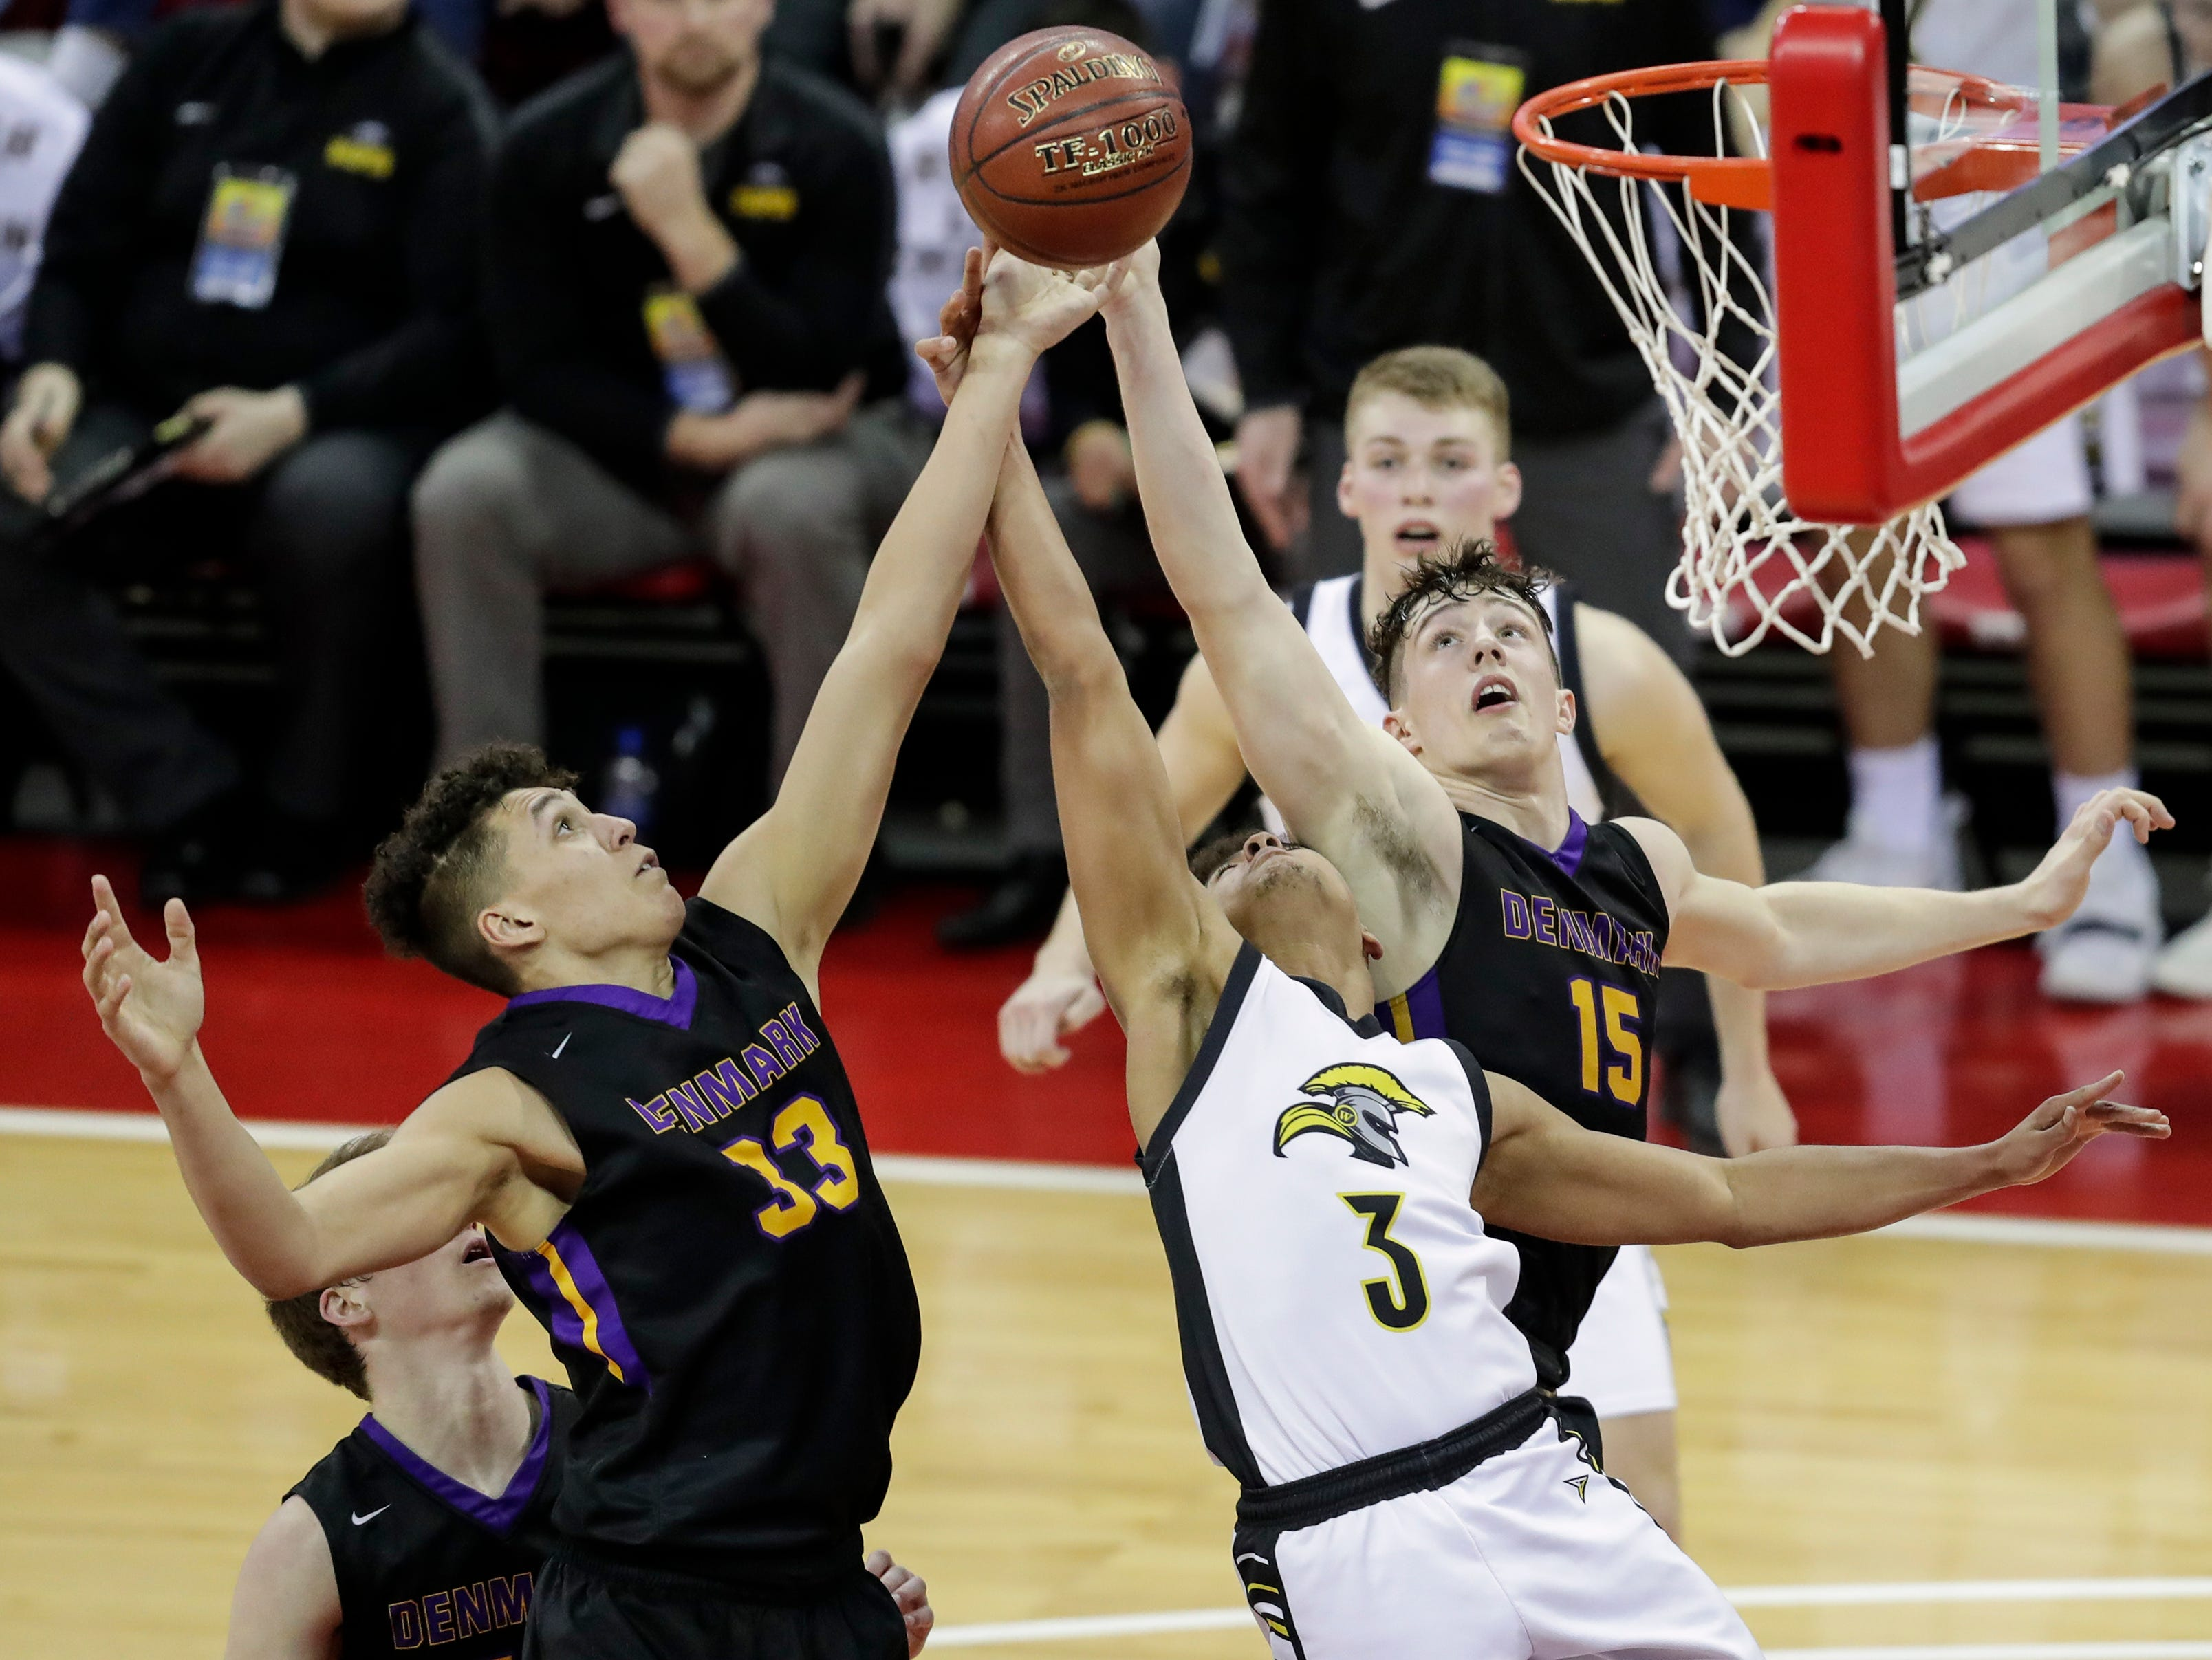 Denmark's Patrick Suemnick (33) and Zane Short (15) battle Waupun's Quintin Winterfeldt (3) for a rebound during their WIAA Division 3 boys basketball state semifinal at the Kohl Center Thursday, March 14, 2019, in Madison, Wis.